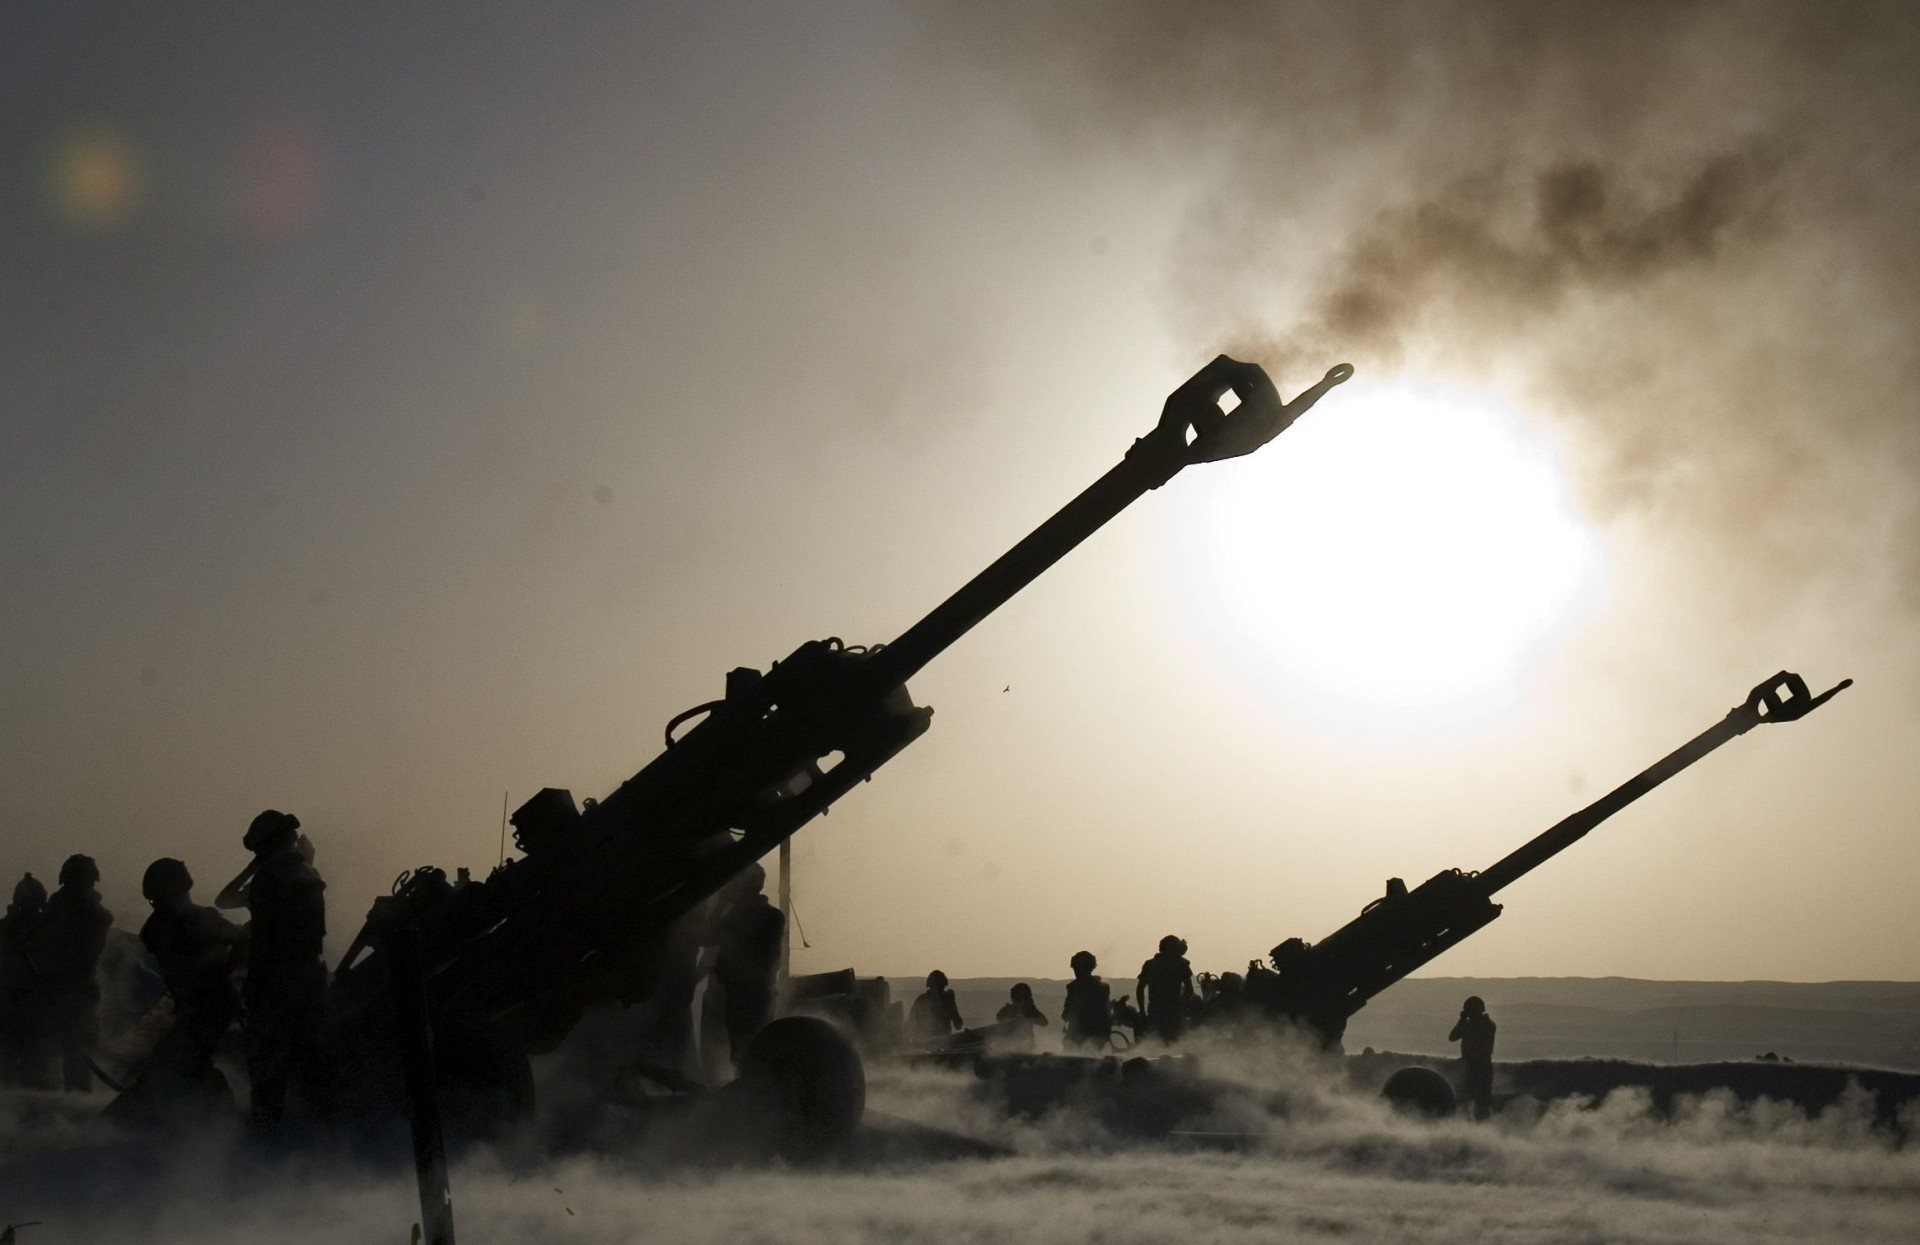 Mahindra and BAE systems join hands to make M777 howitzers in India.